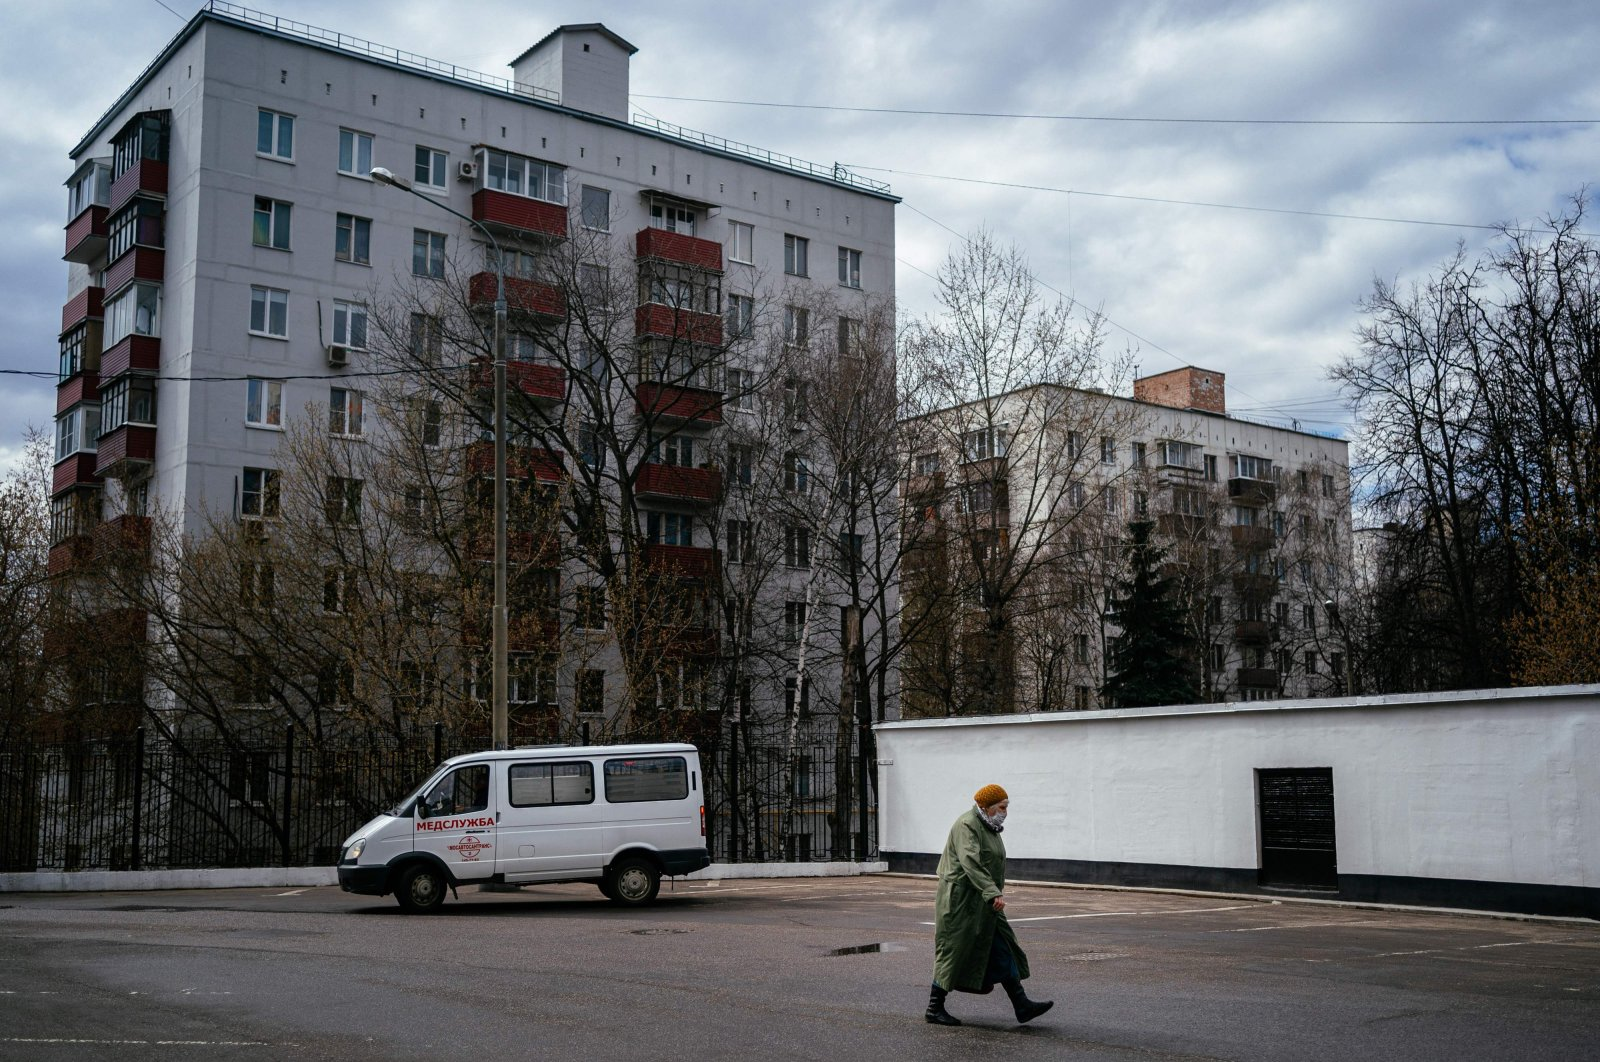 An elderly woman wearing a face mask walks near Moscow's K+31 private hospital, which has switched over entirely to treating coronavirus patients, on April 20, 2020. (AFP Photo)